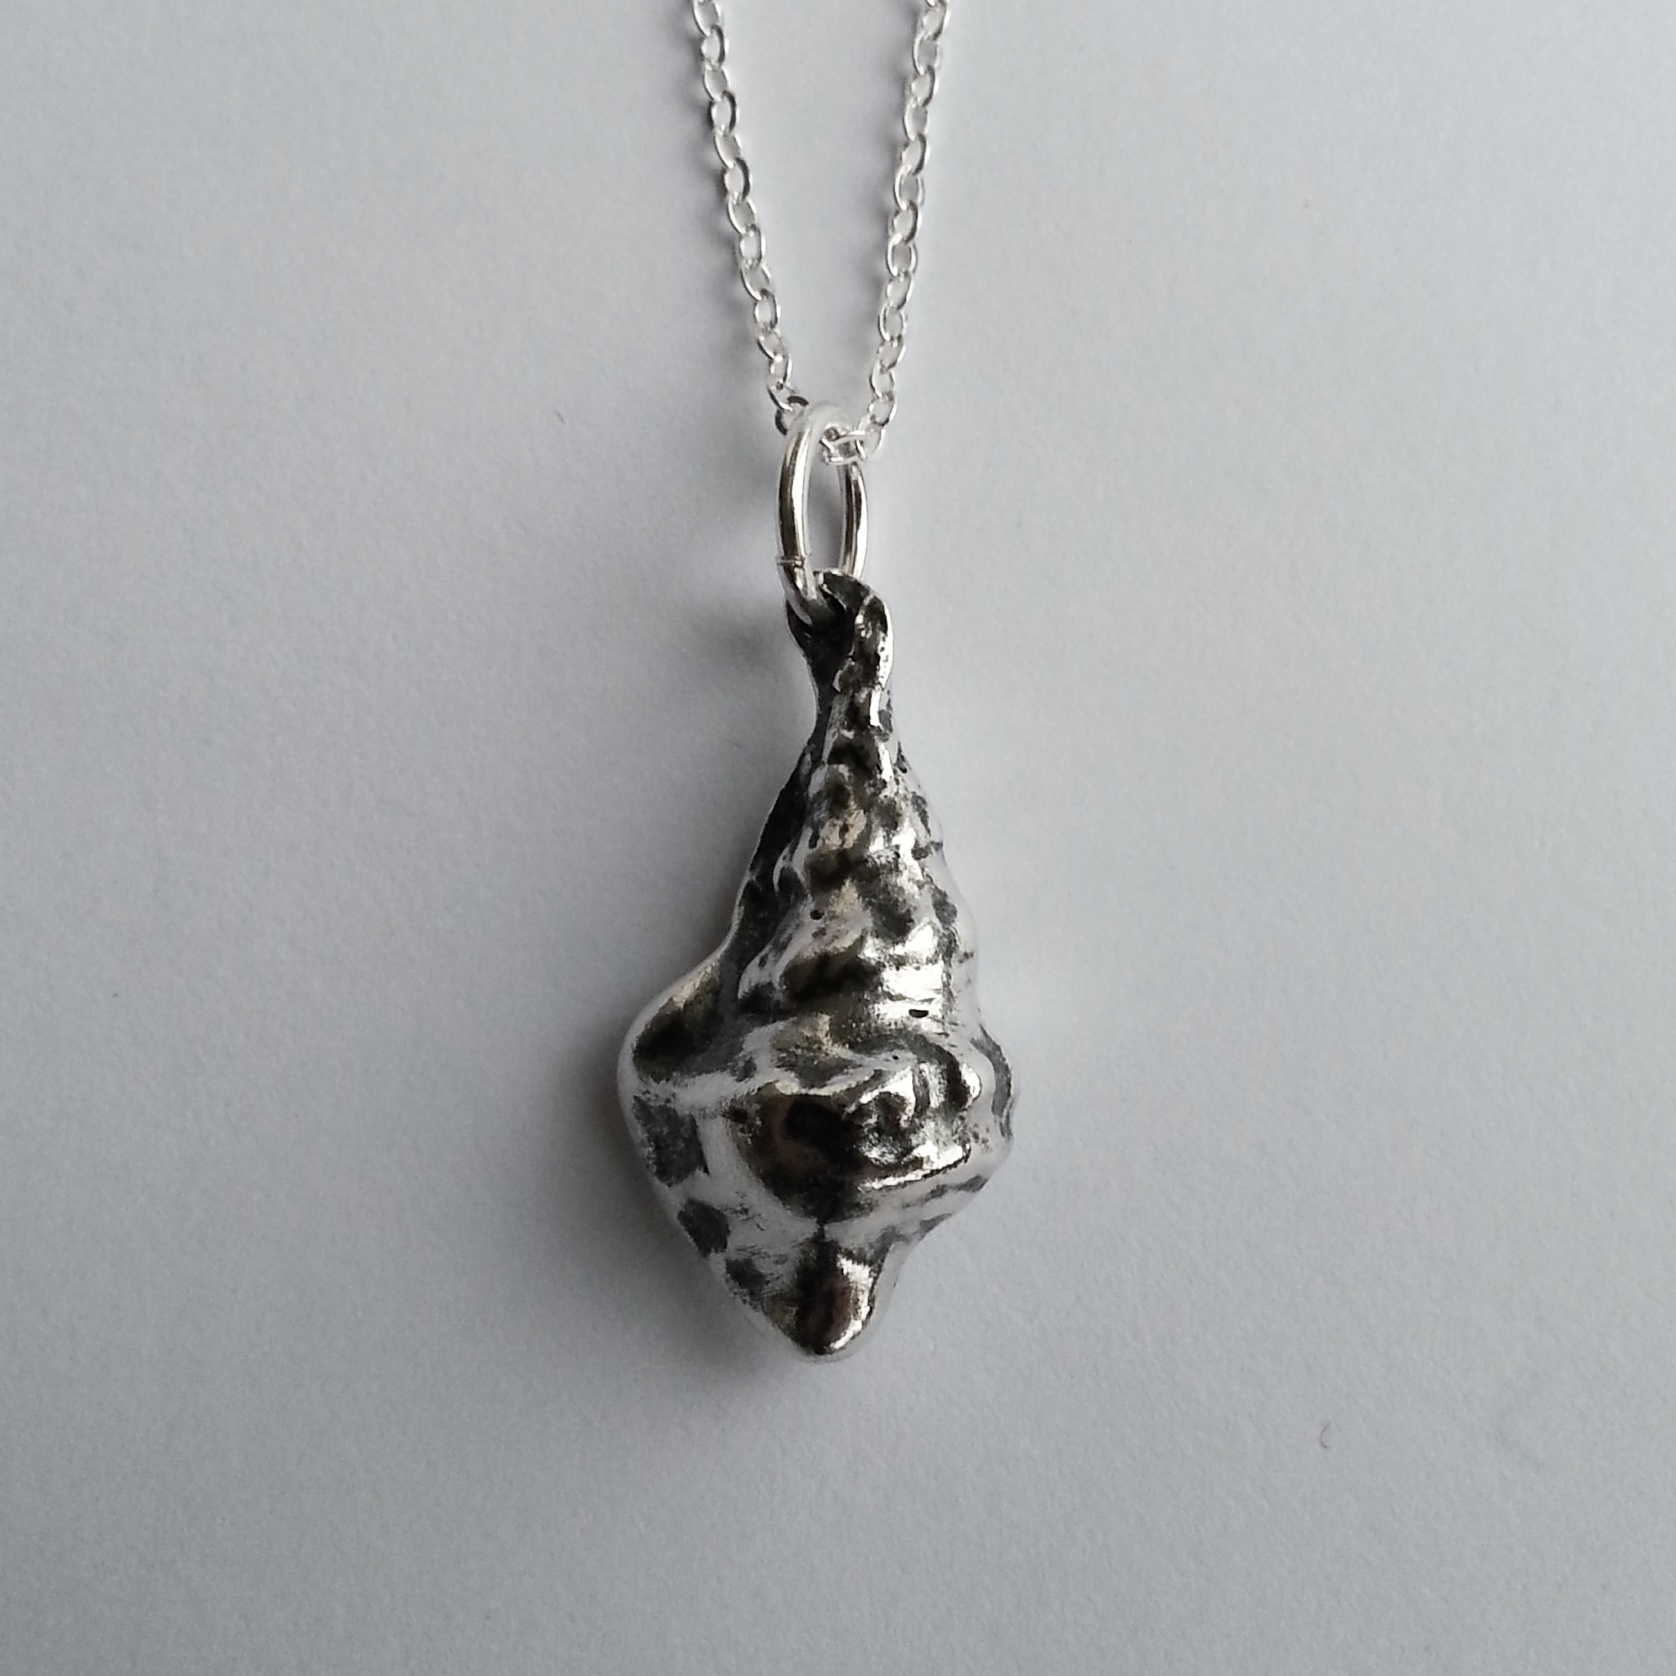 Unique Solid Sterling Silver Seashell Necklace, Handcrafted Original Pendant